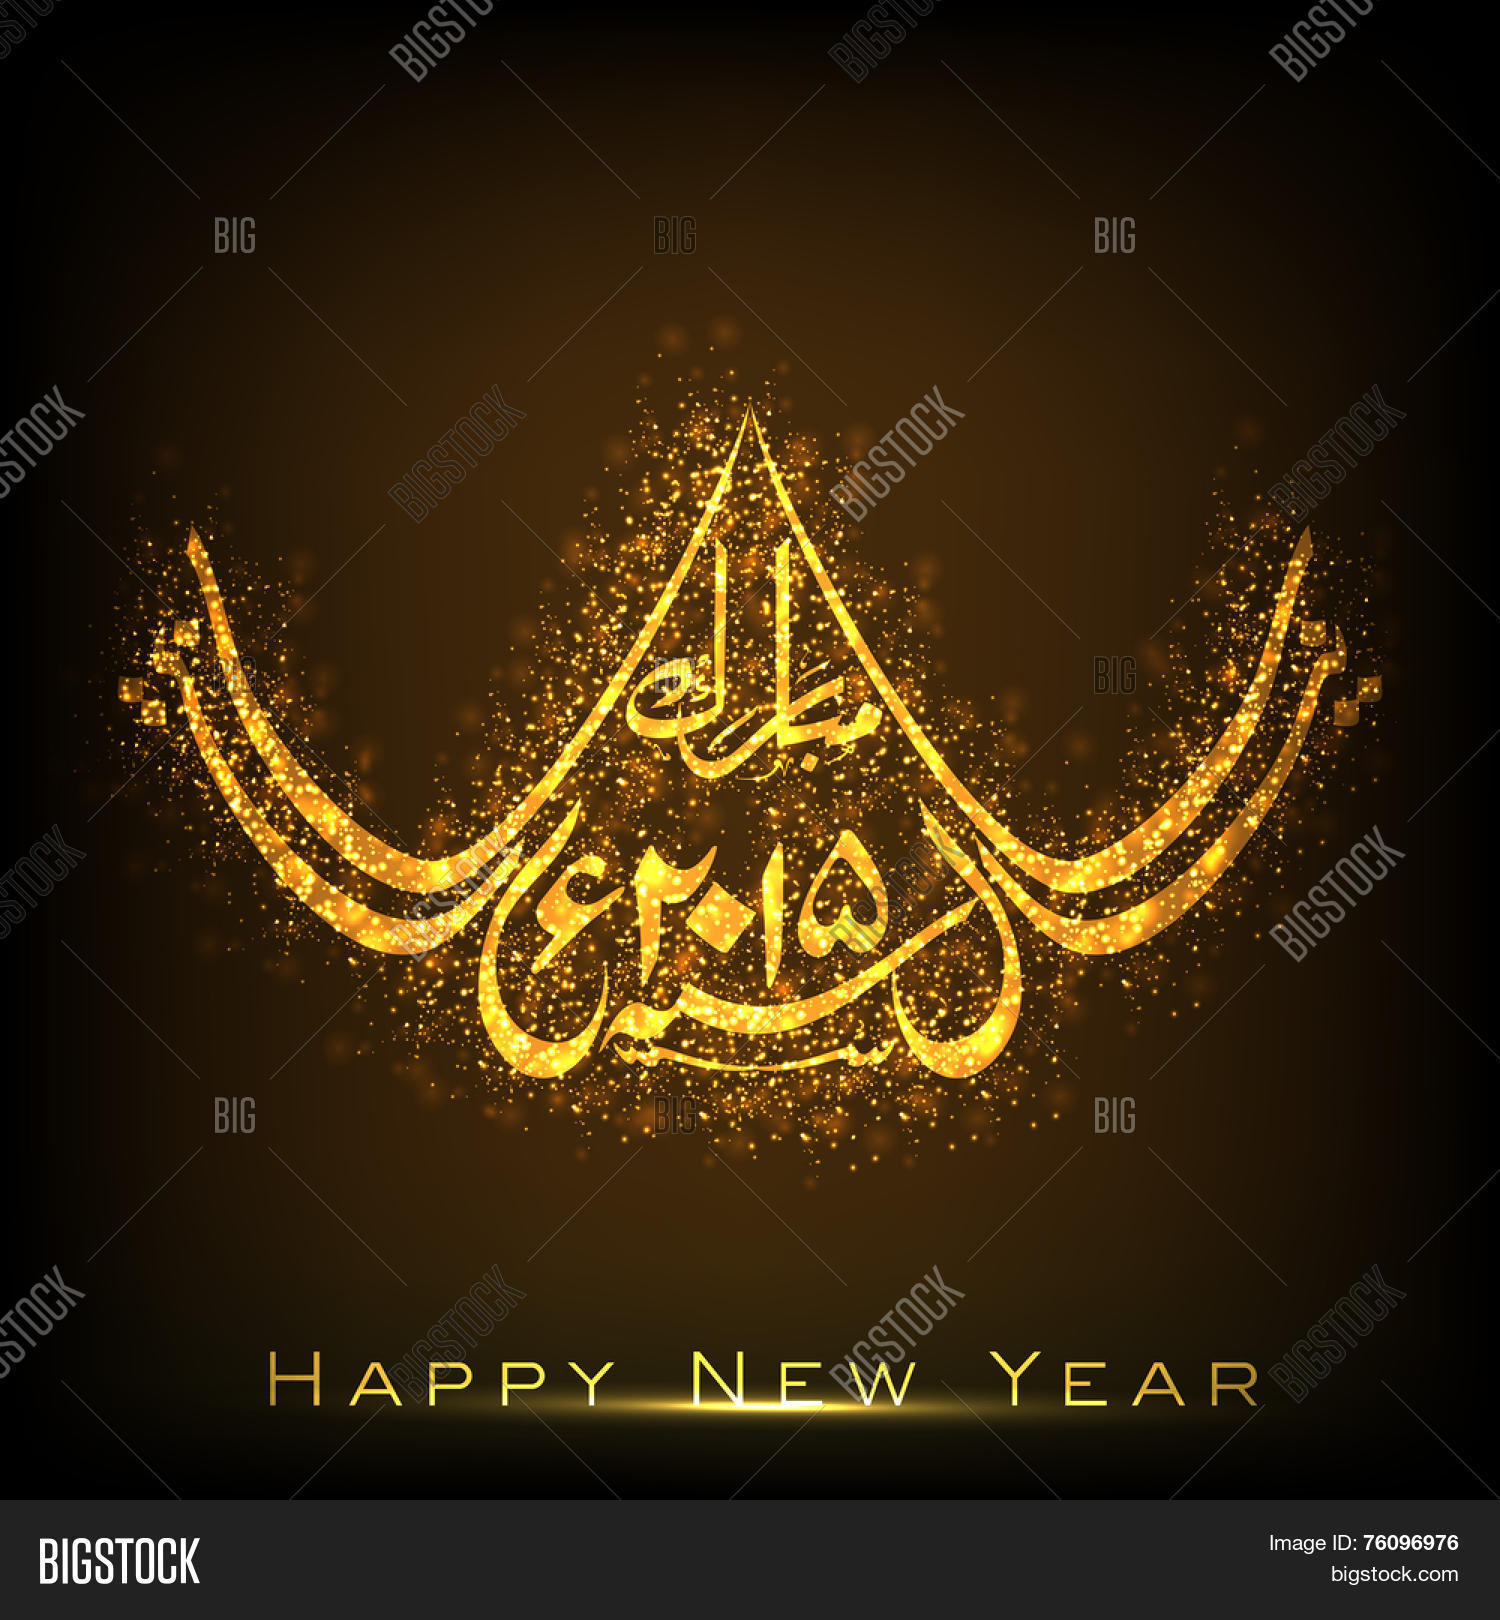 Shiny golden urdu vector photo free trial bigstock shiny golden urdu islamic calligraphy of text naya saal mubarak 2015 happy new year m4hsunfo